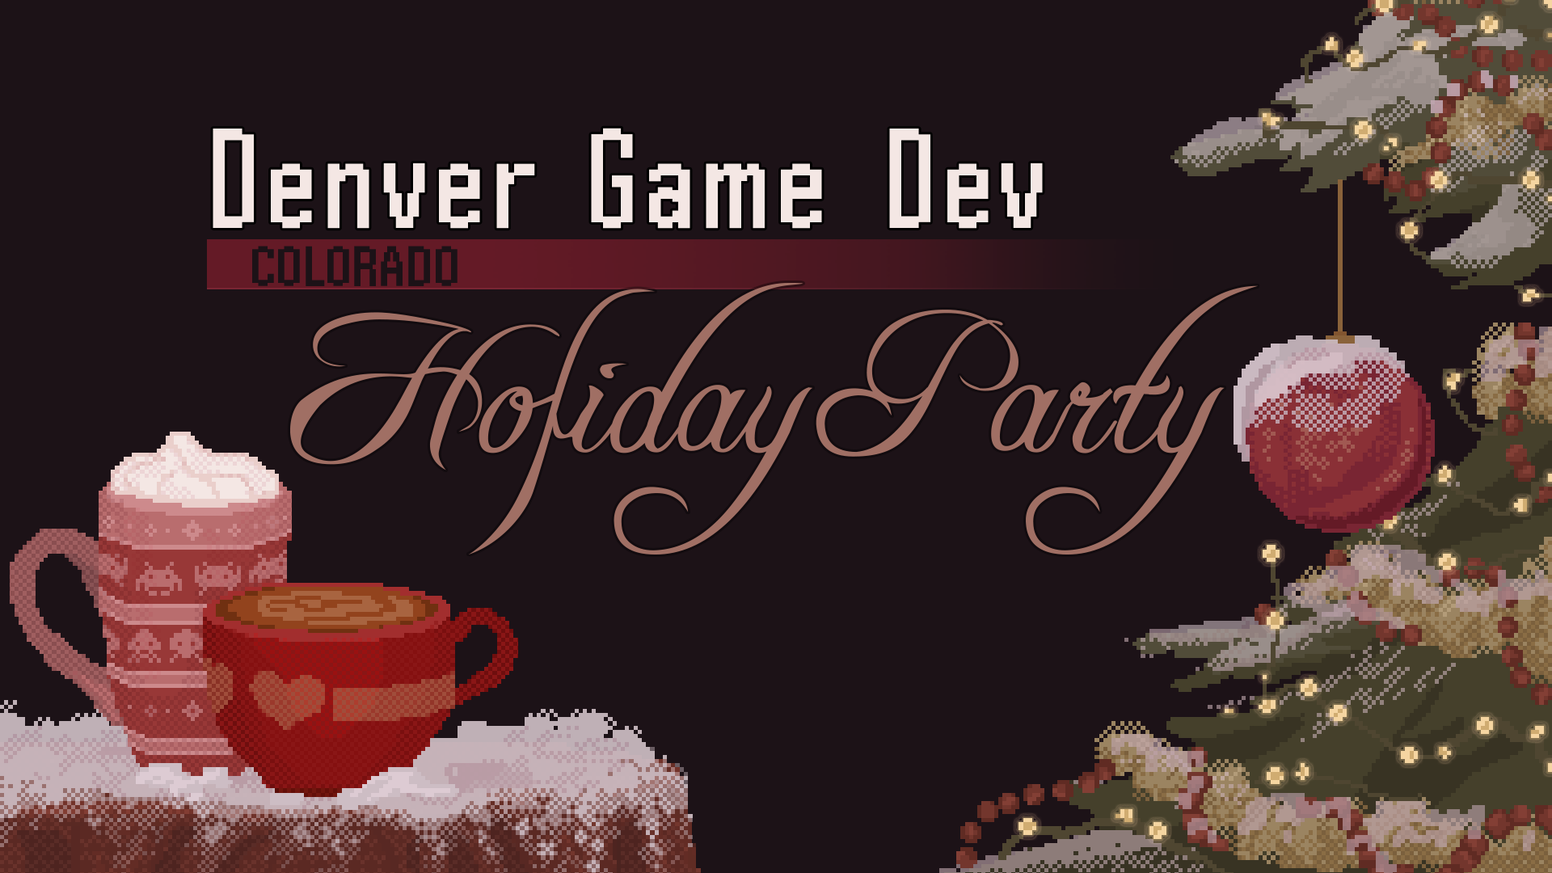 Help us throw a FREE party for indie game developers in Denver, Colorado this December.